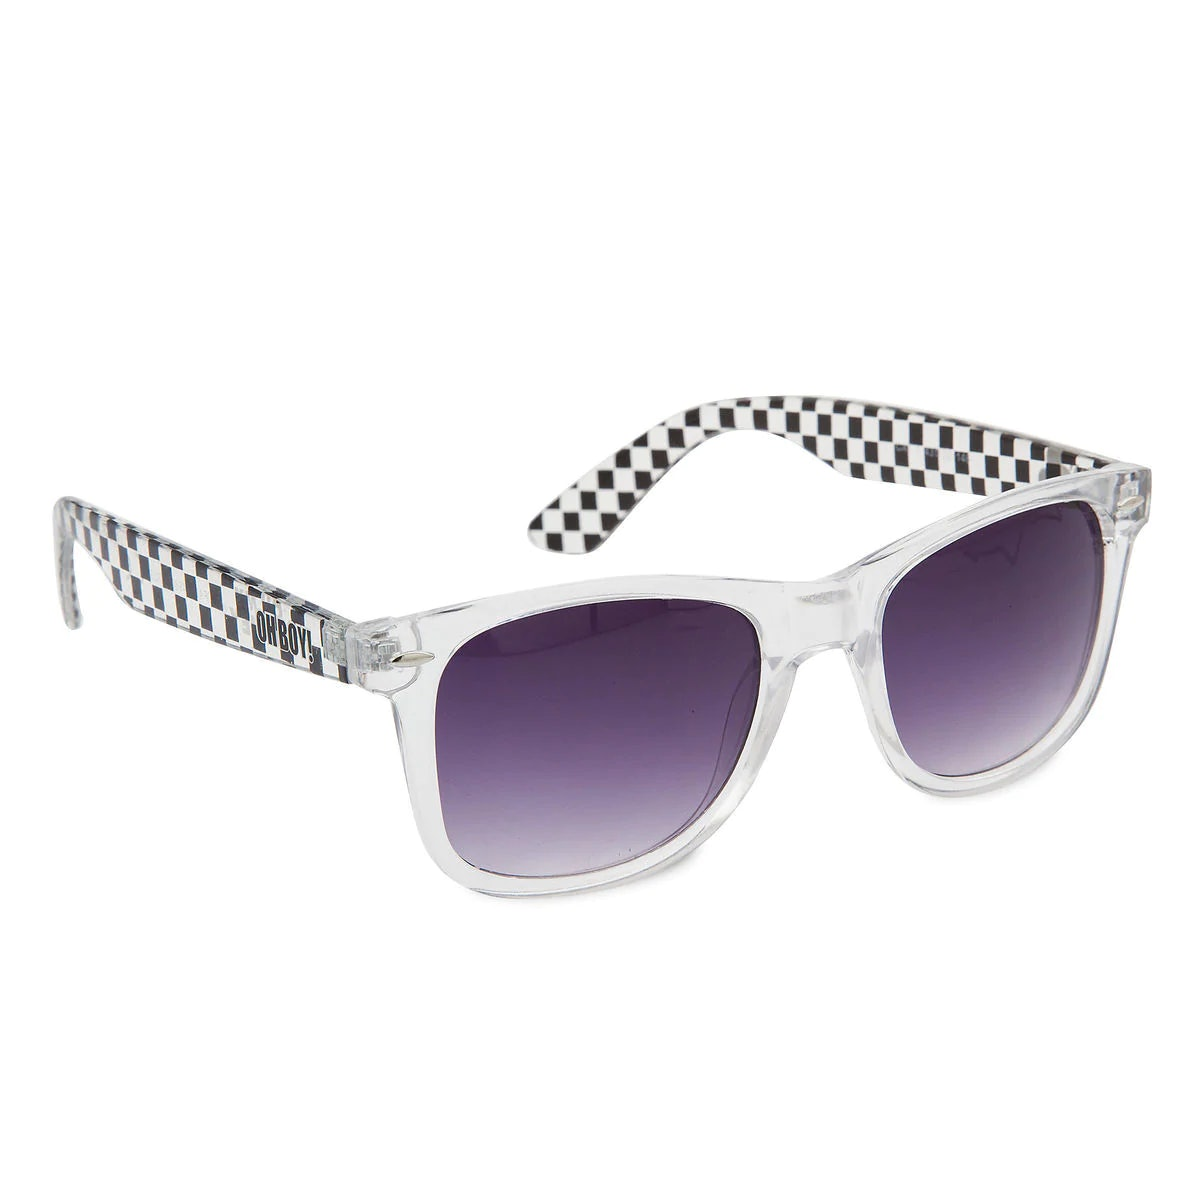 Mickey Mouse Sunglasses for Adults - Oh My Disney